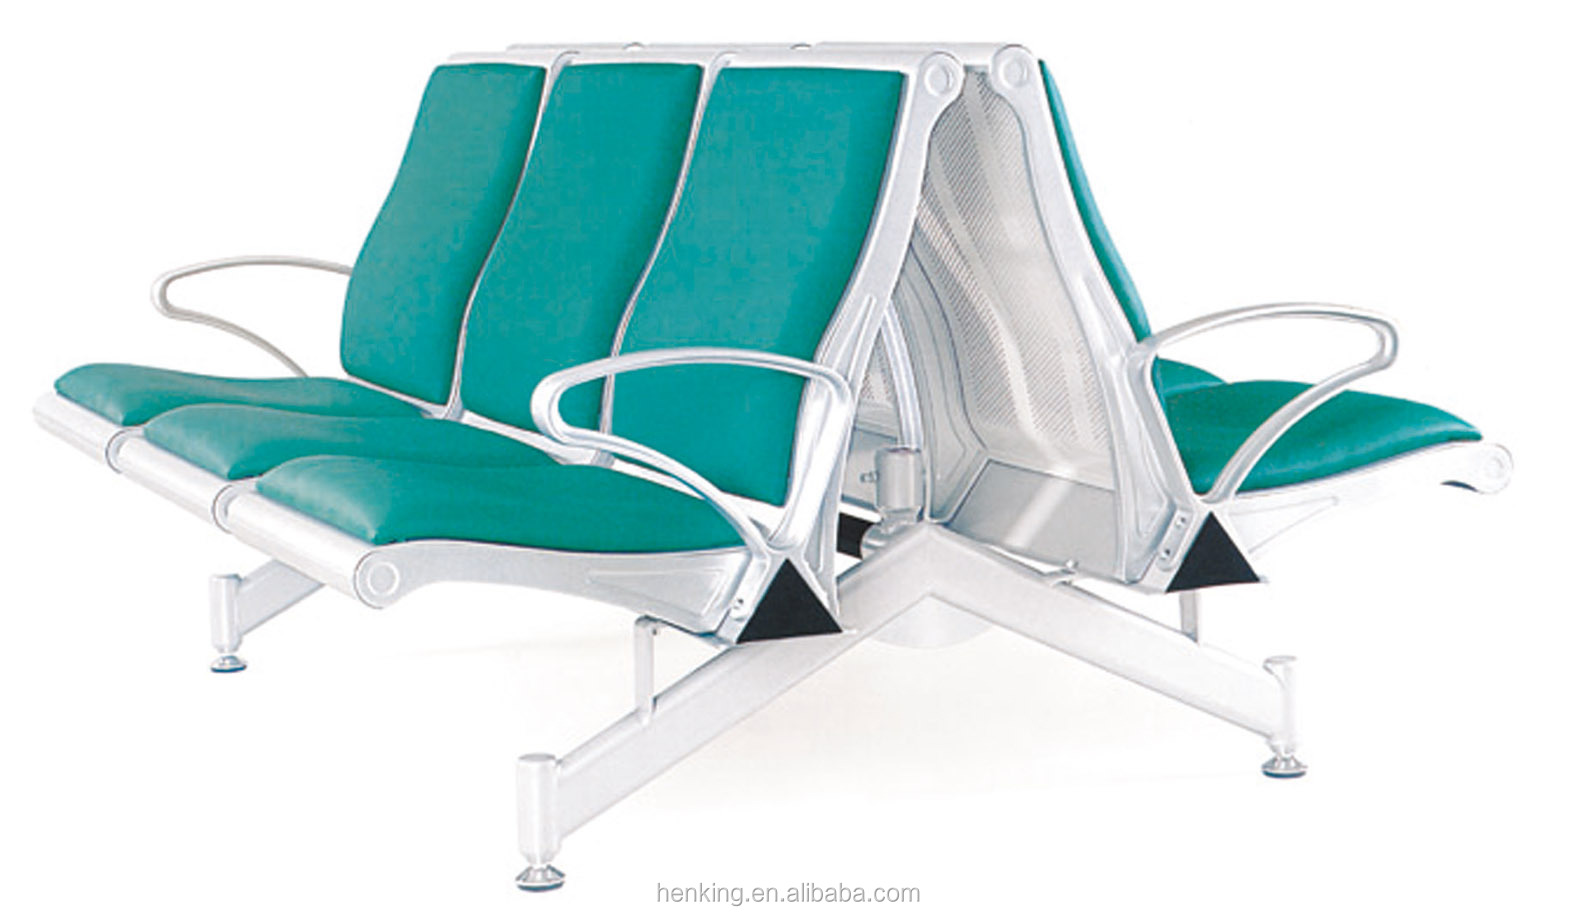 steel airport chair brown leather butterfly henking high quality 3 seater stainless